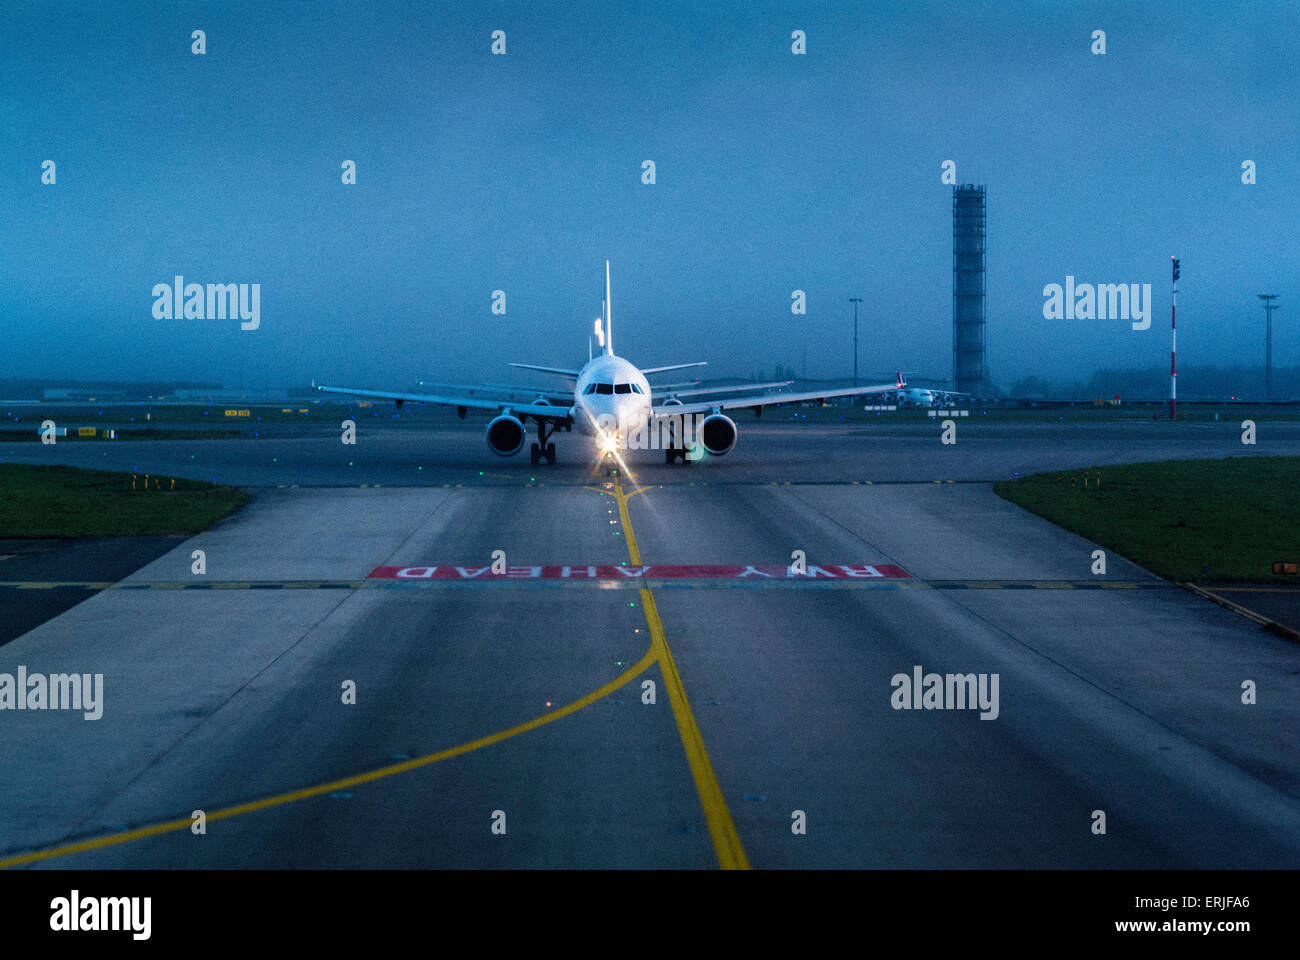 Plane on runway at airport just before takeoff - Stock Image